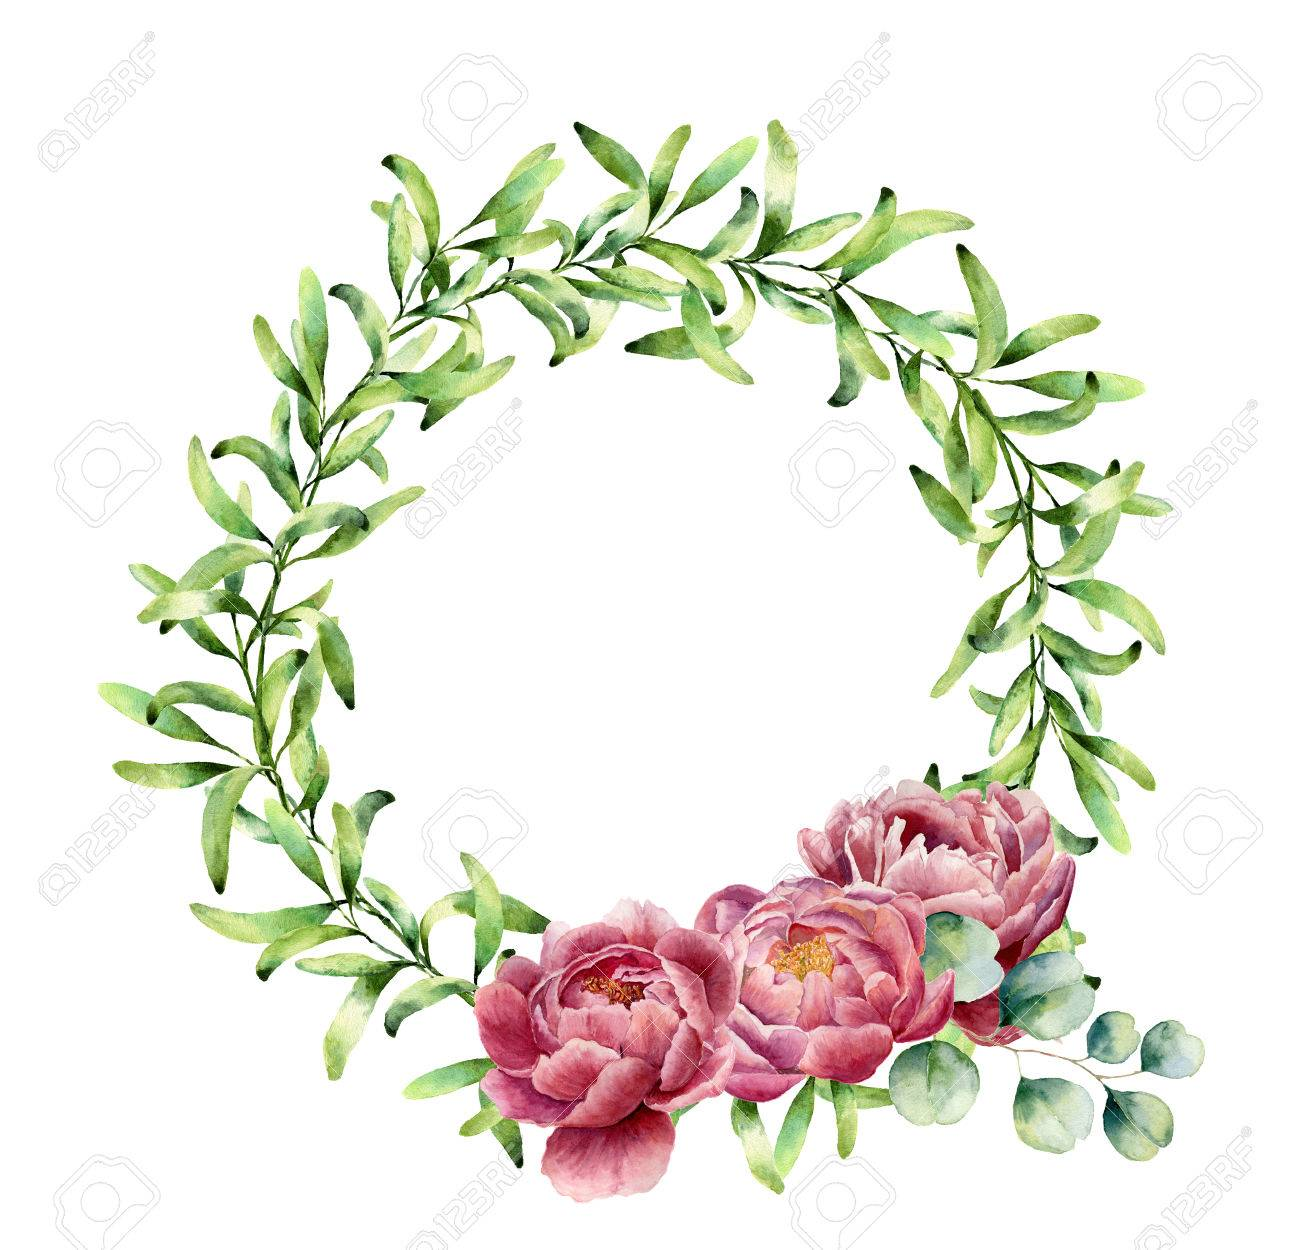 Watercolor Greenery Wreath With Peony Flowers And Eucalyptus Stock